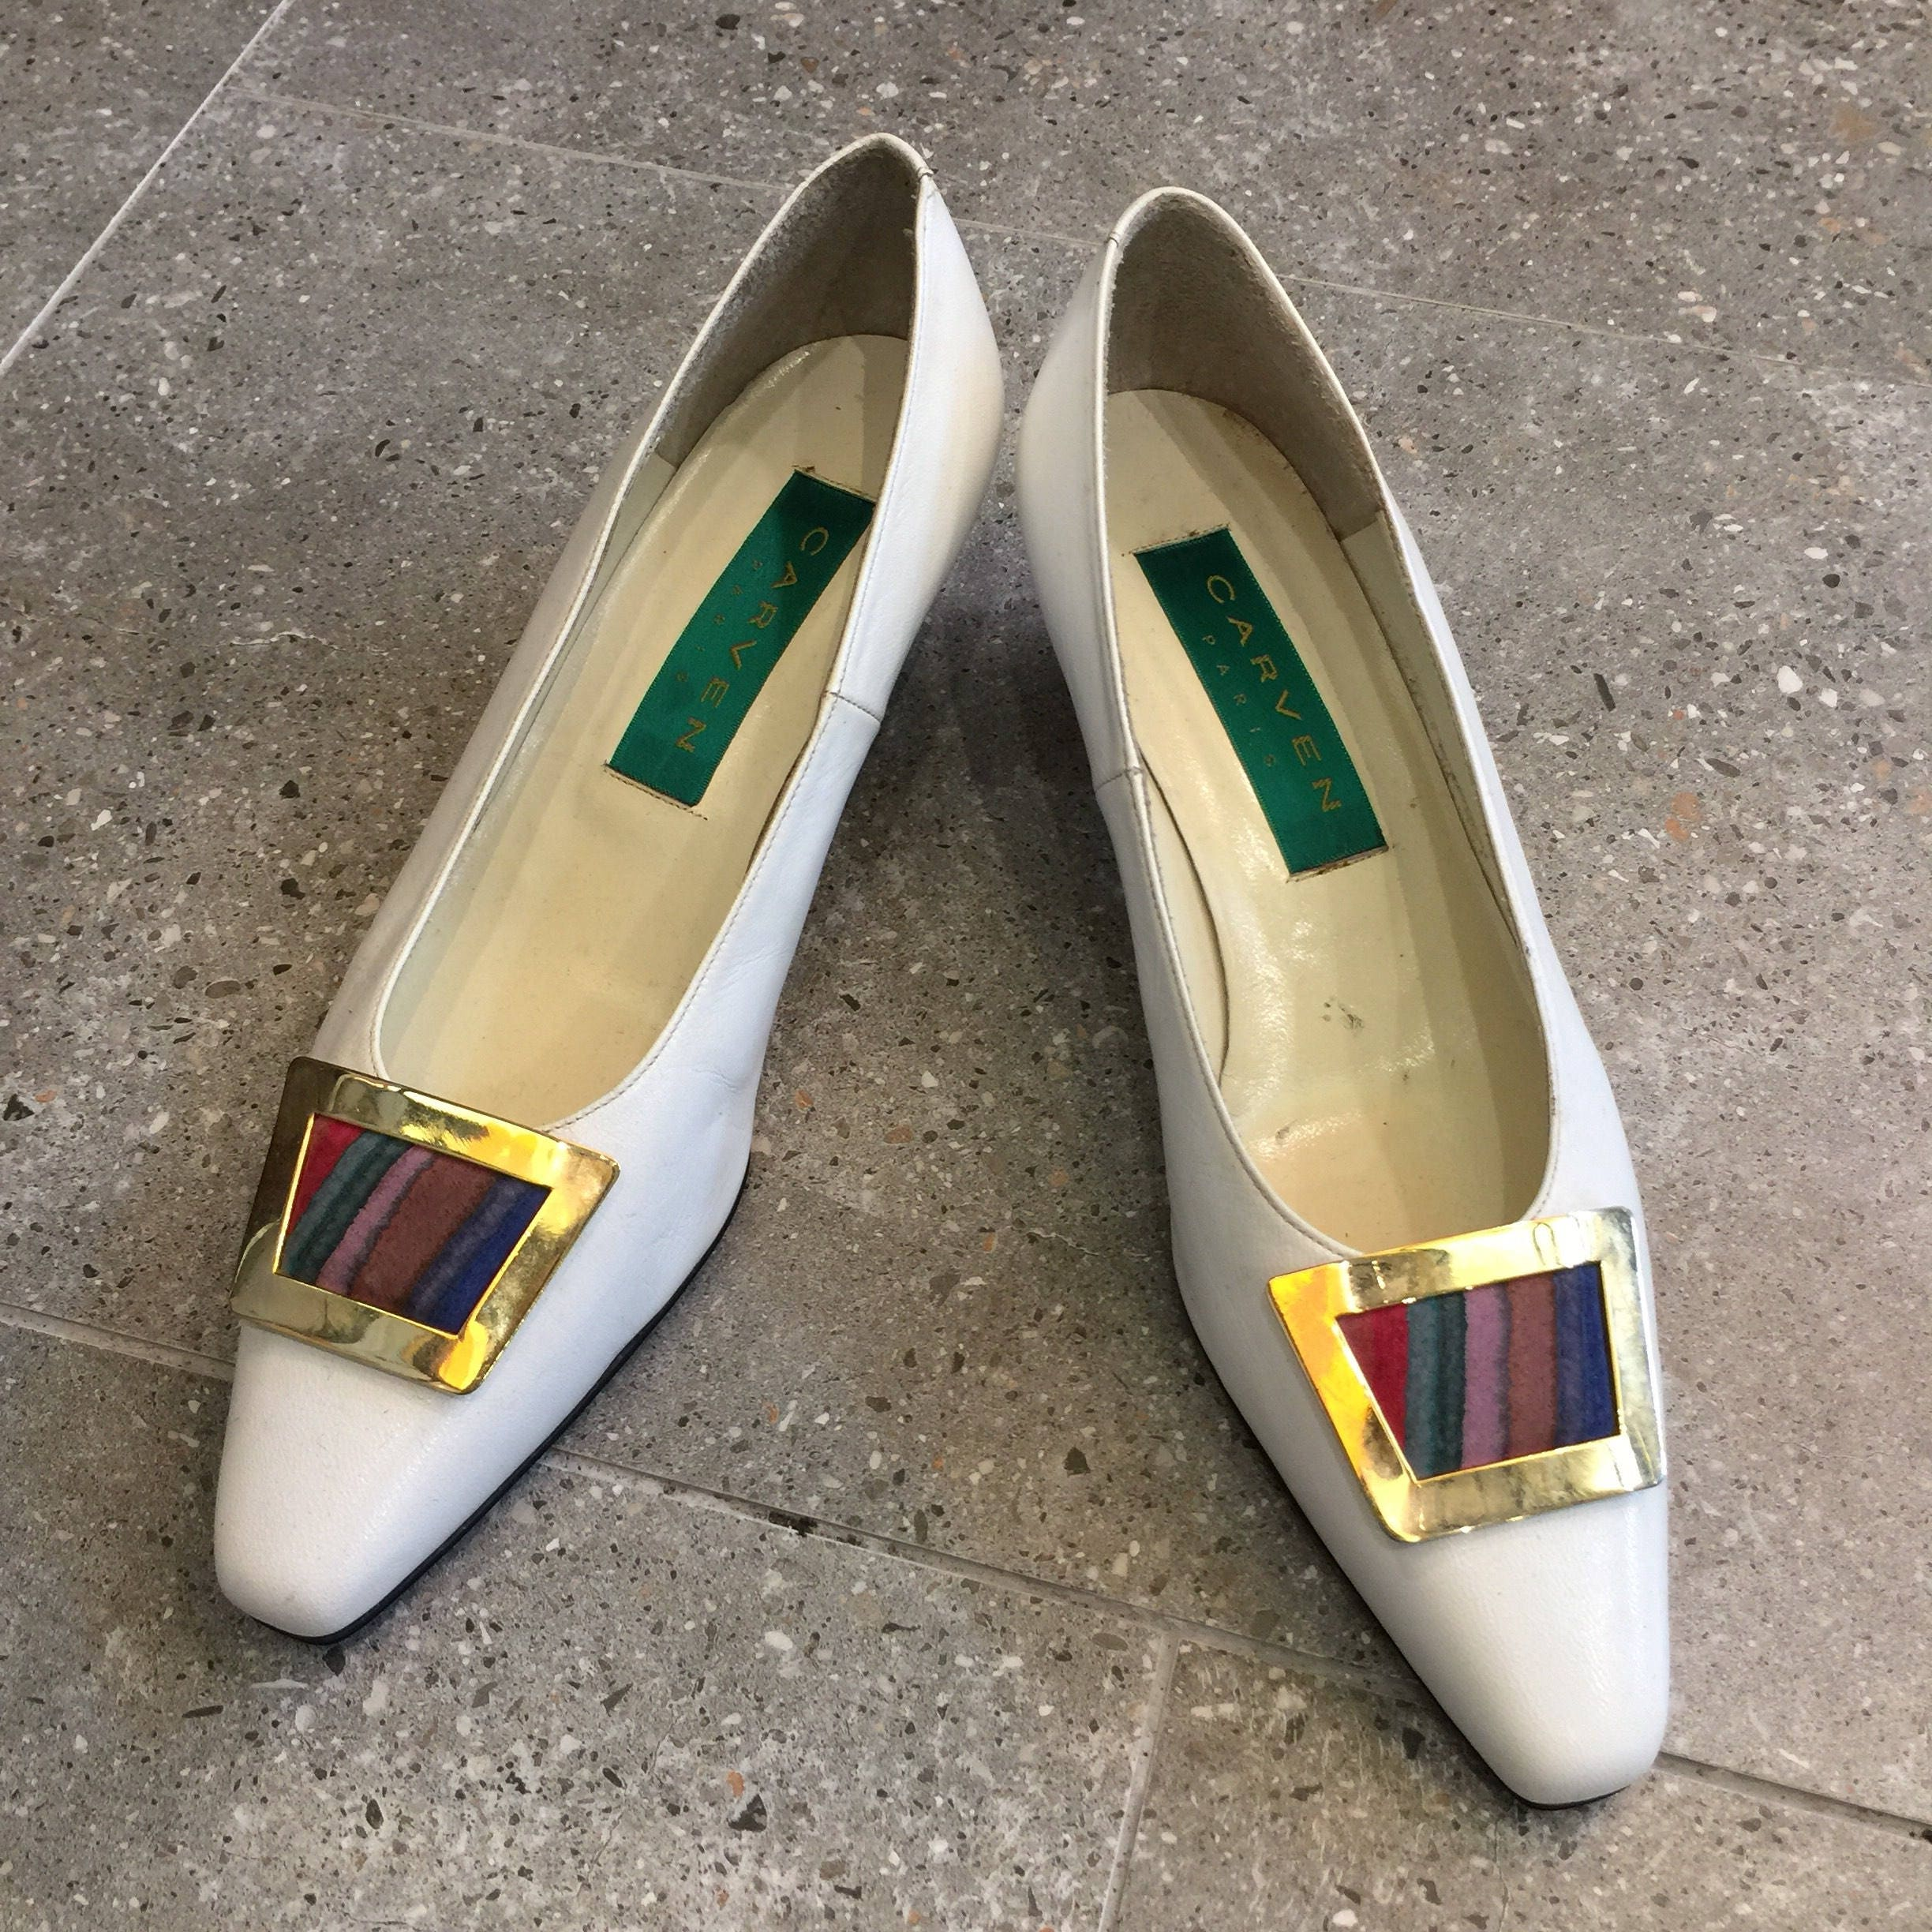 Vintage Metal Carven White Leather Pumps HeelsWith Painted Gold Metal Vintage Buckle, 80s Women Shoes 725556